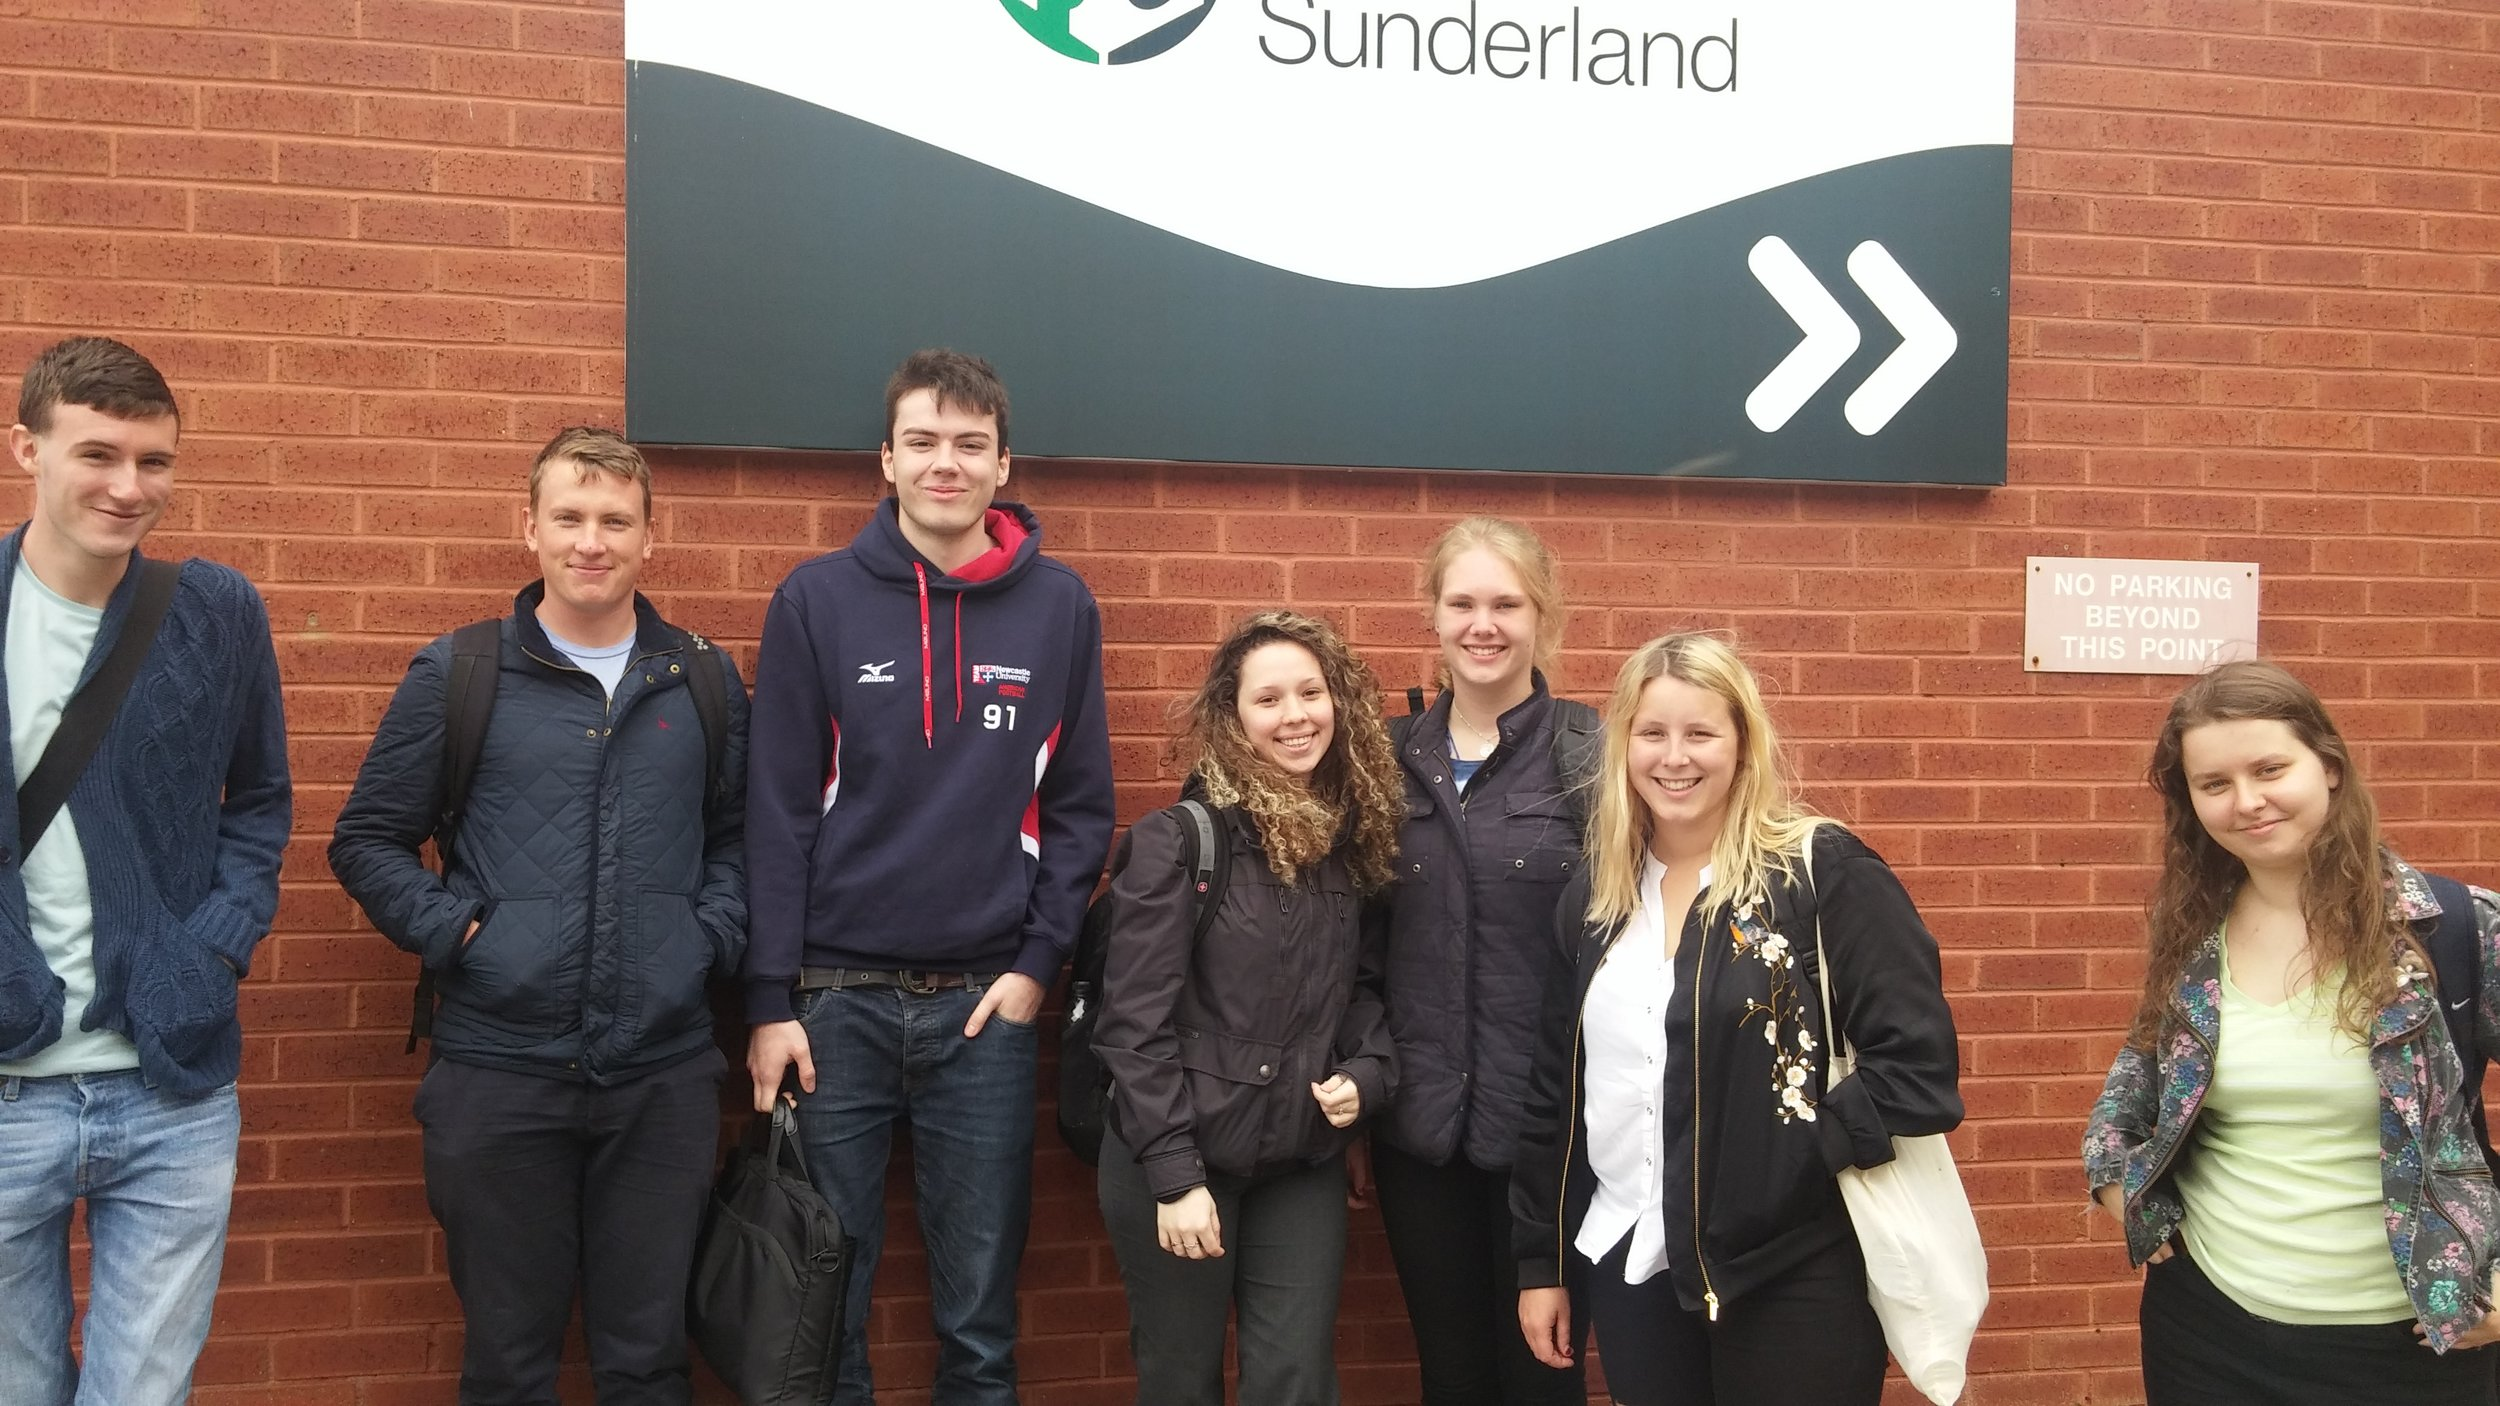 Our team assembled outside FabLab, Sunderland where we learned about 3D design